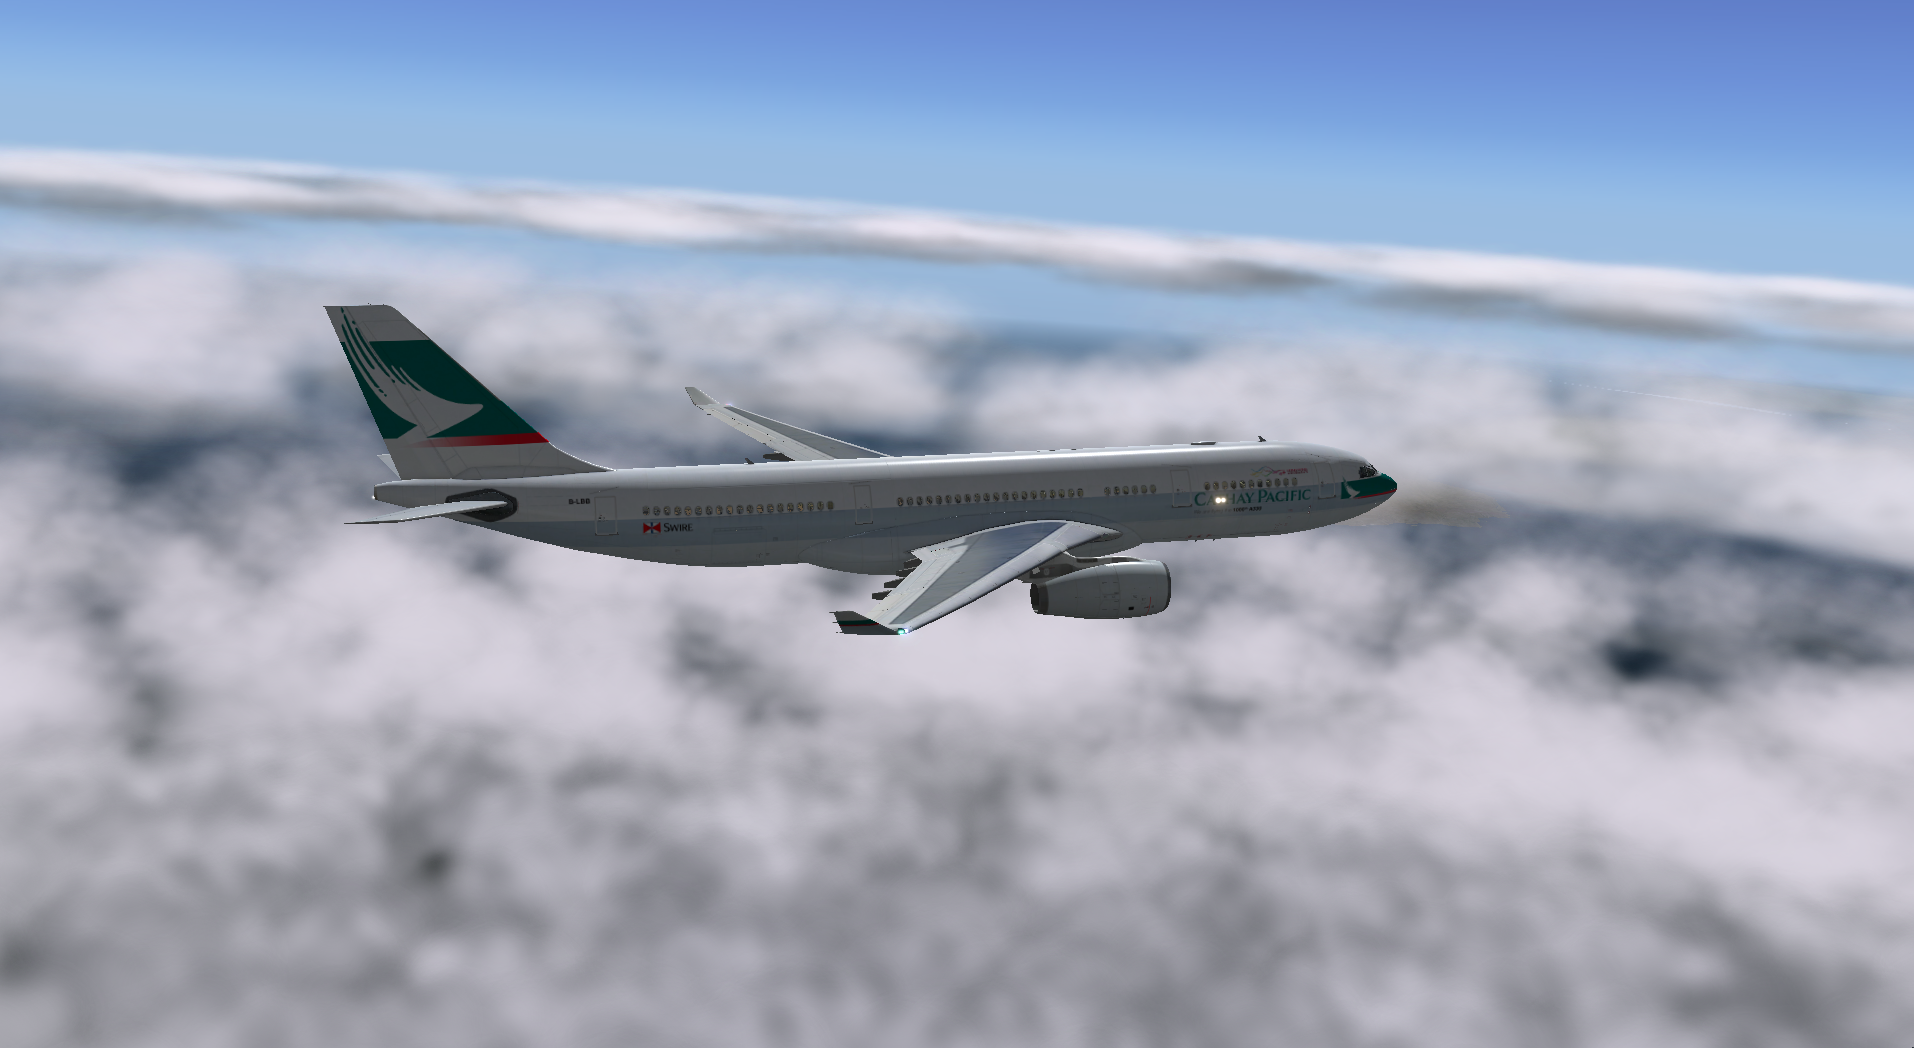 JARDesign A330-200 Review